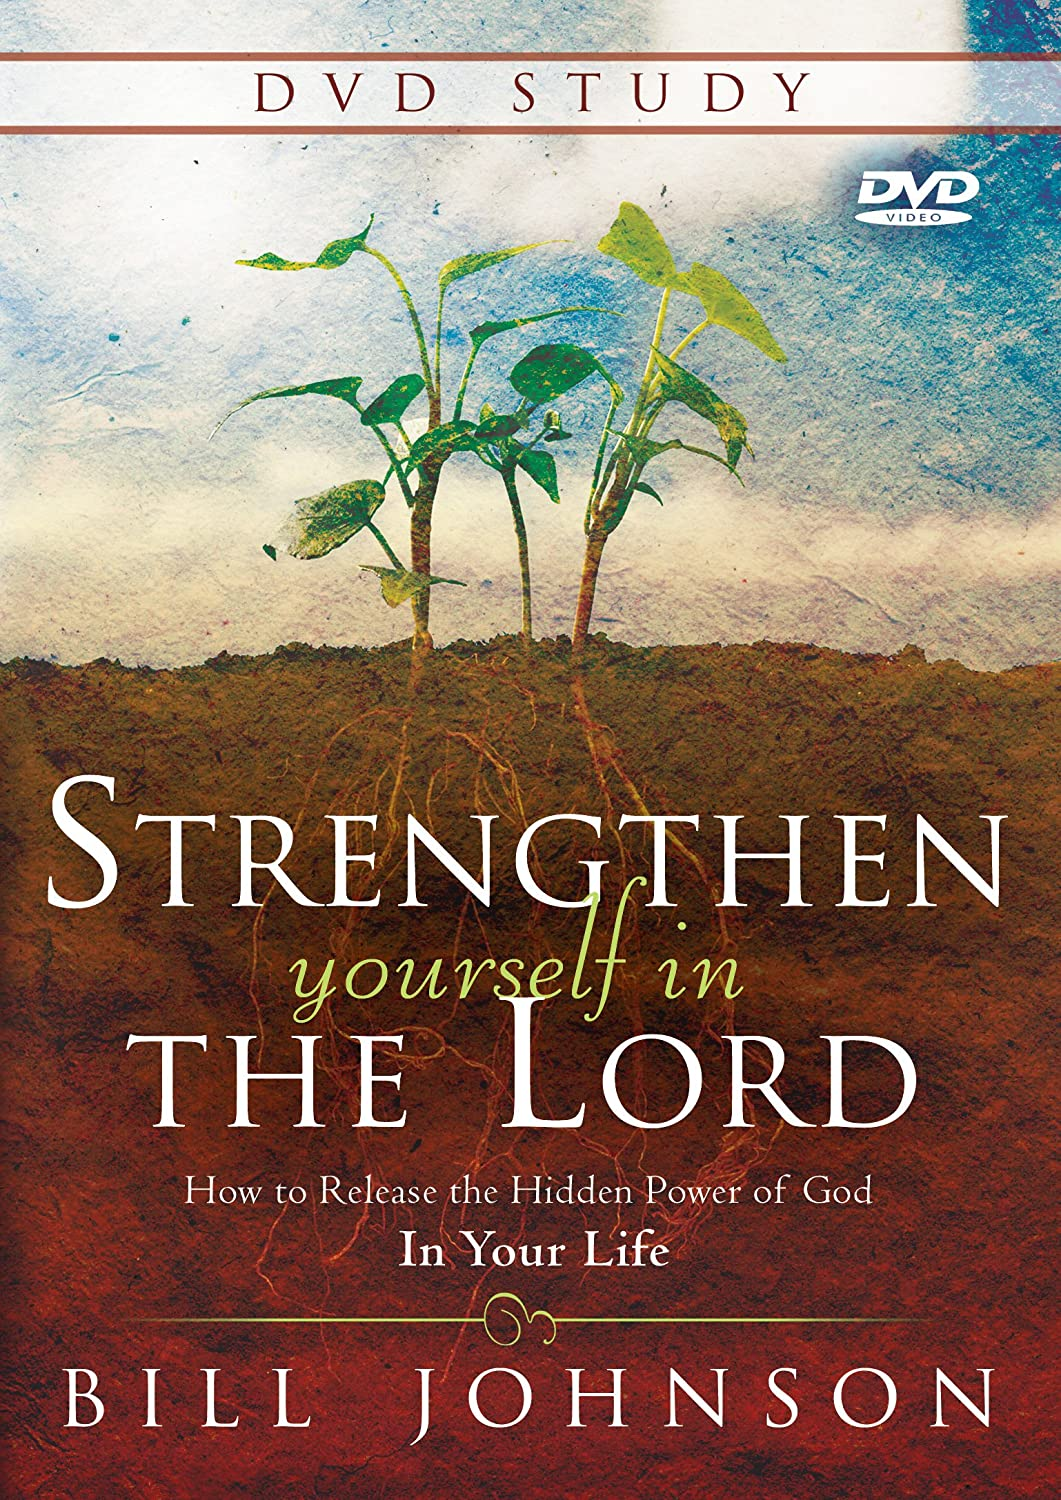 Amazon.com: Strengthen Yourself in the Lord DVD Study: How to Release the  Hidden Power of God in Your Life: Bill Johnson: Movies & TV